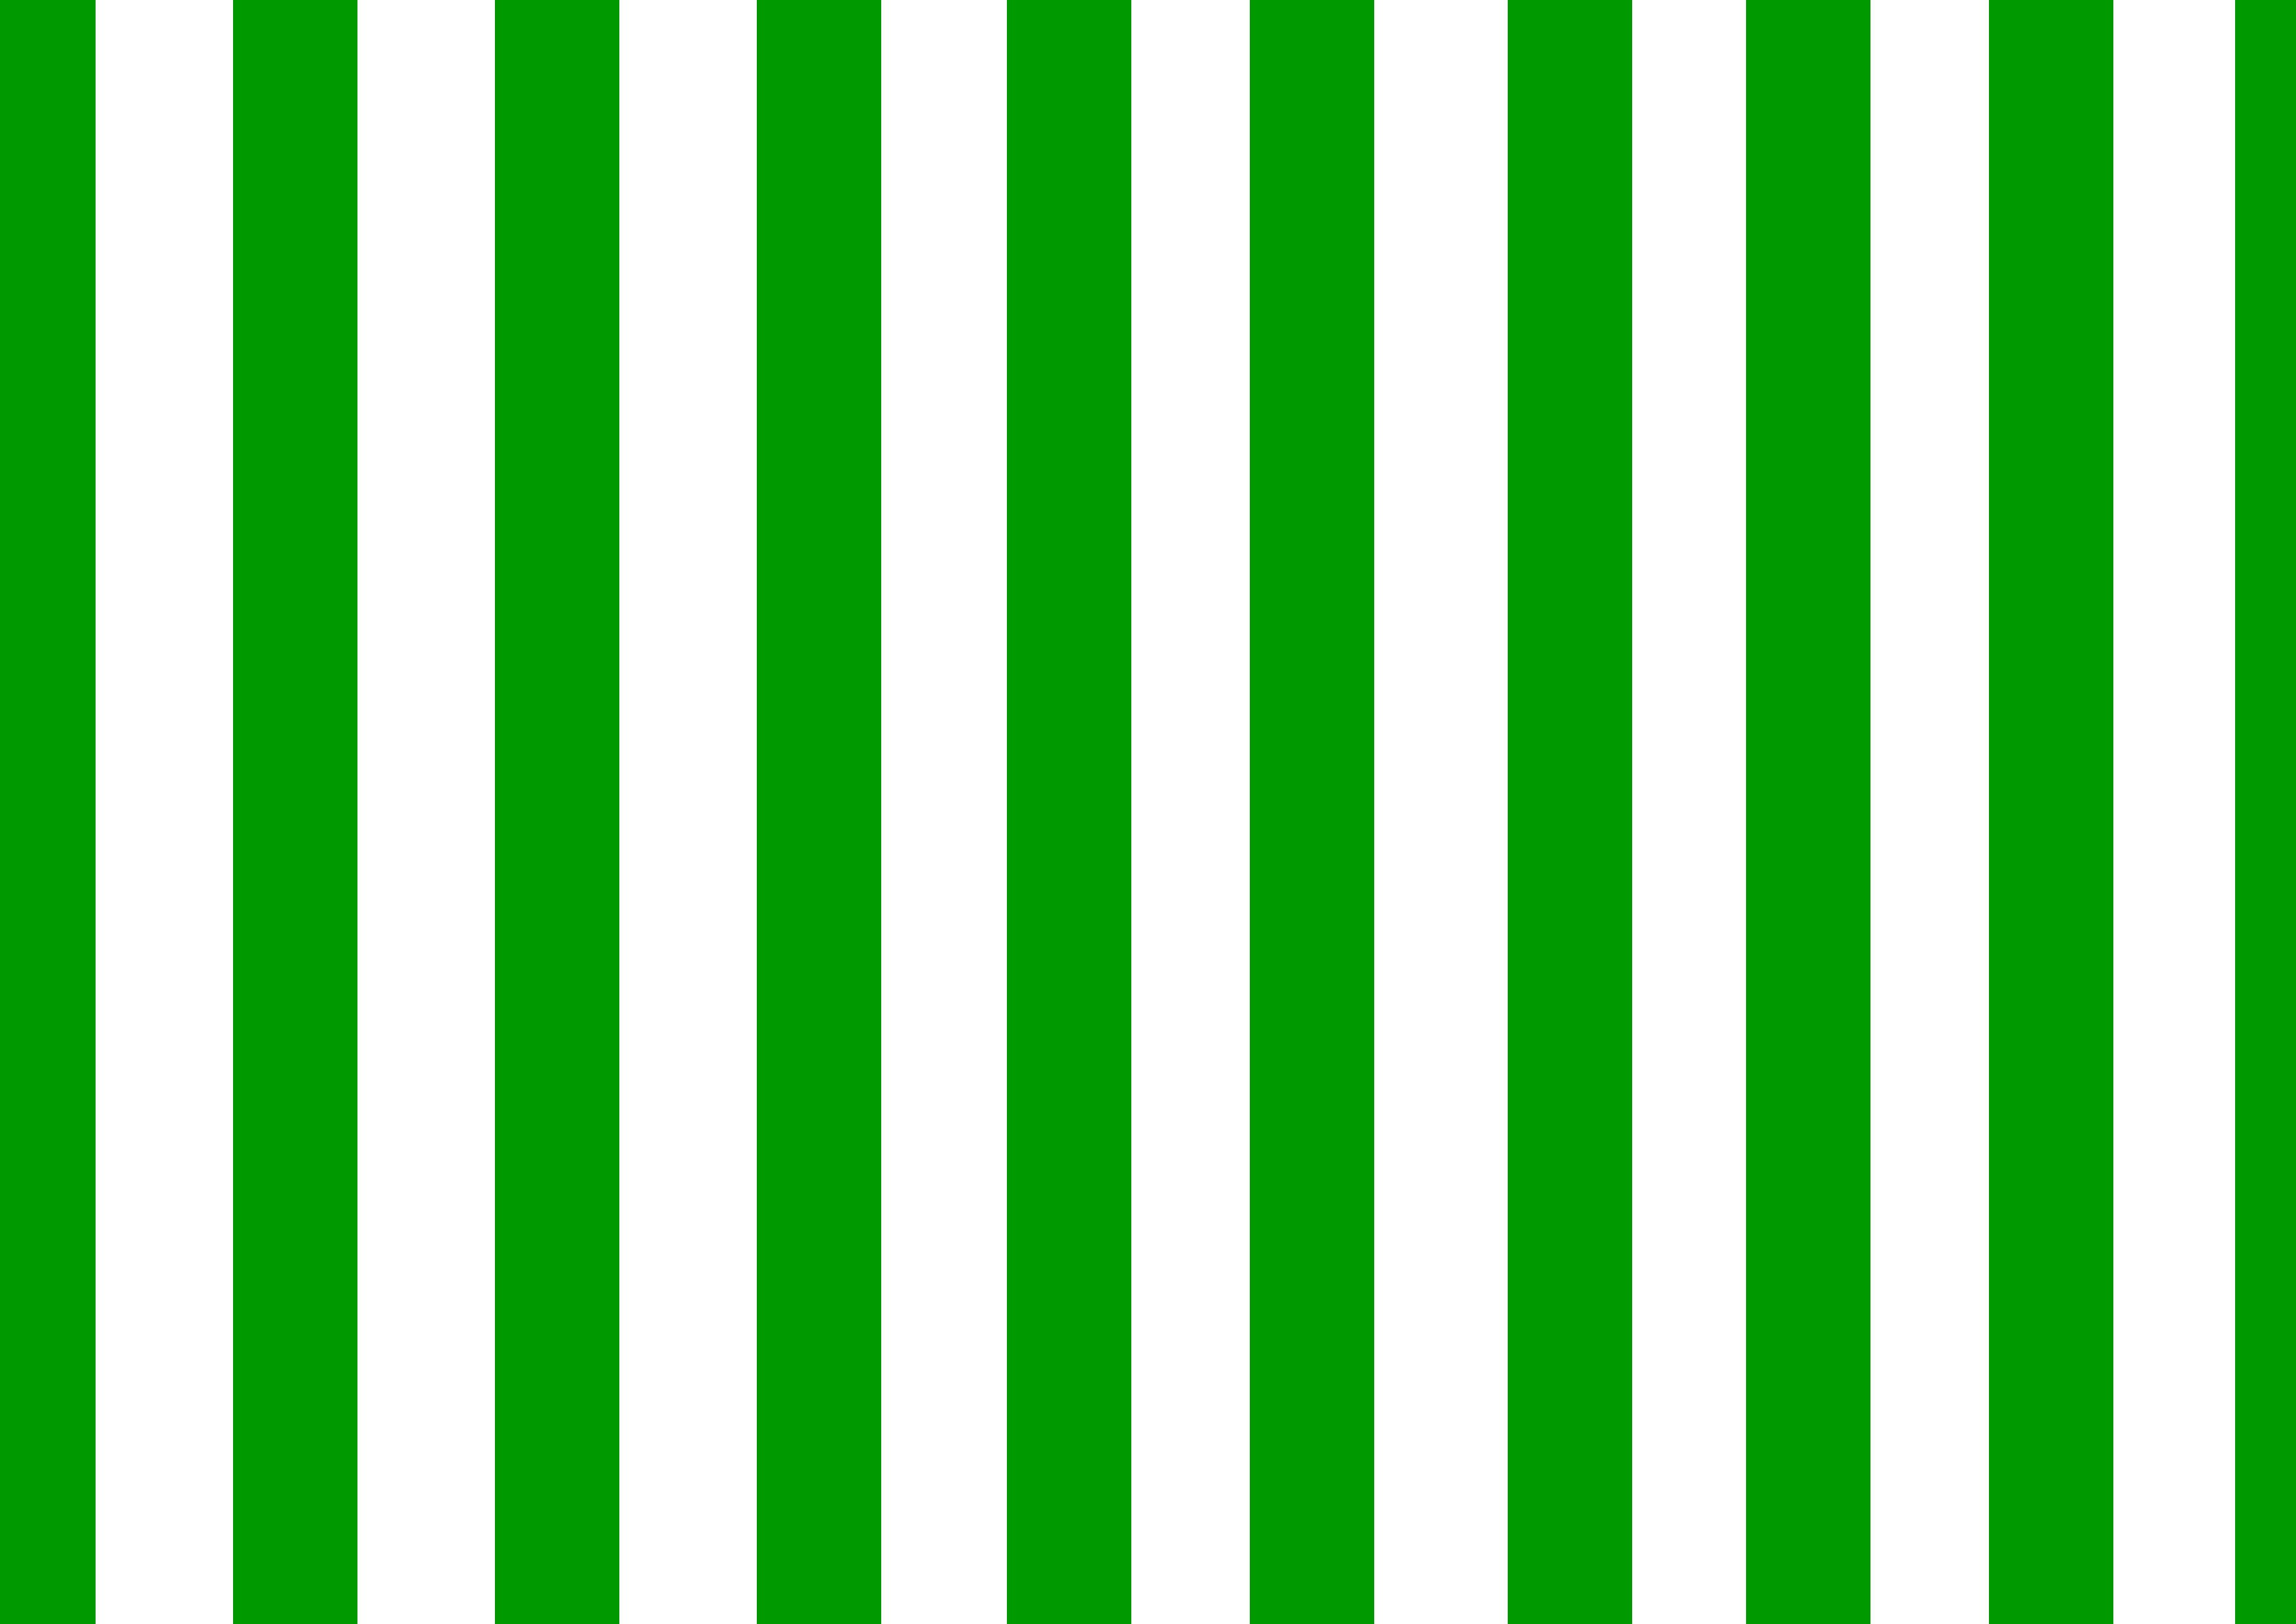 green and white backgrounds - photo #49